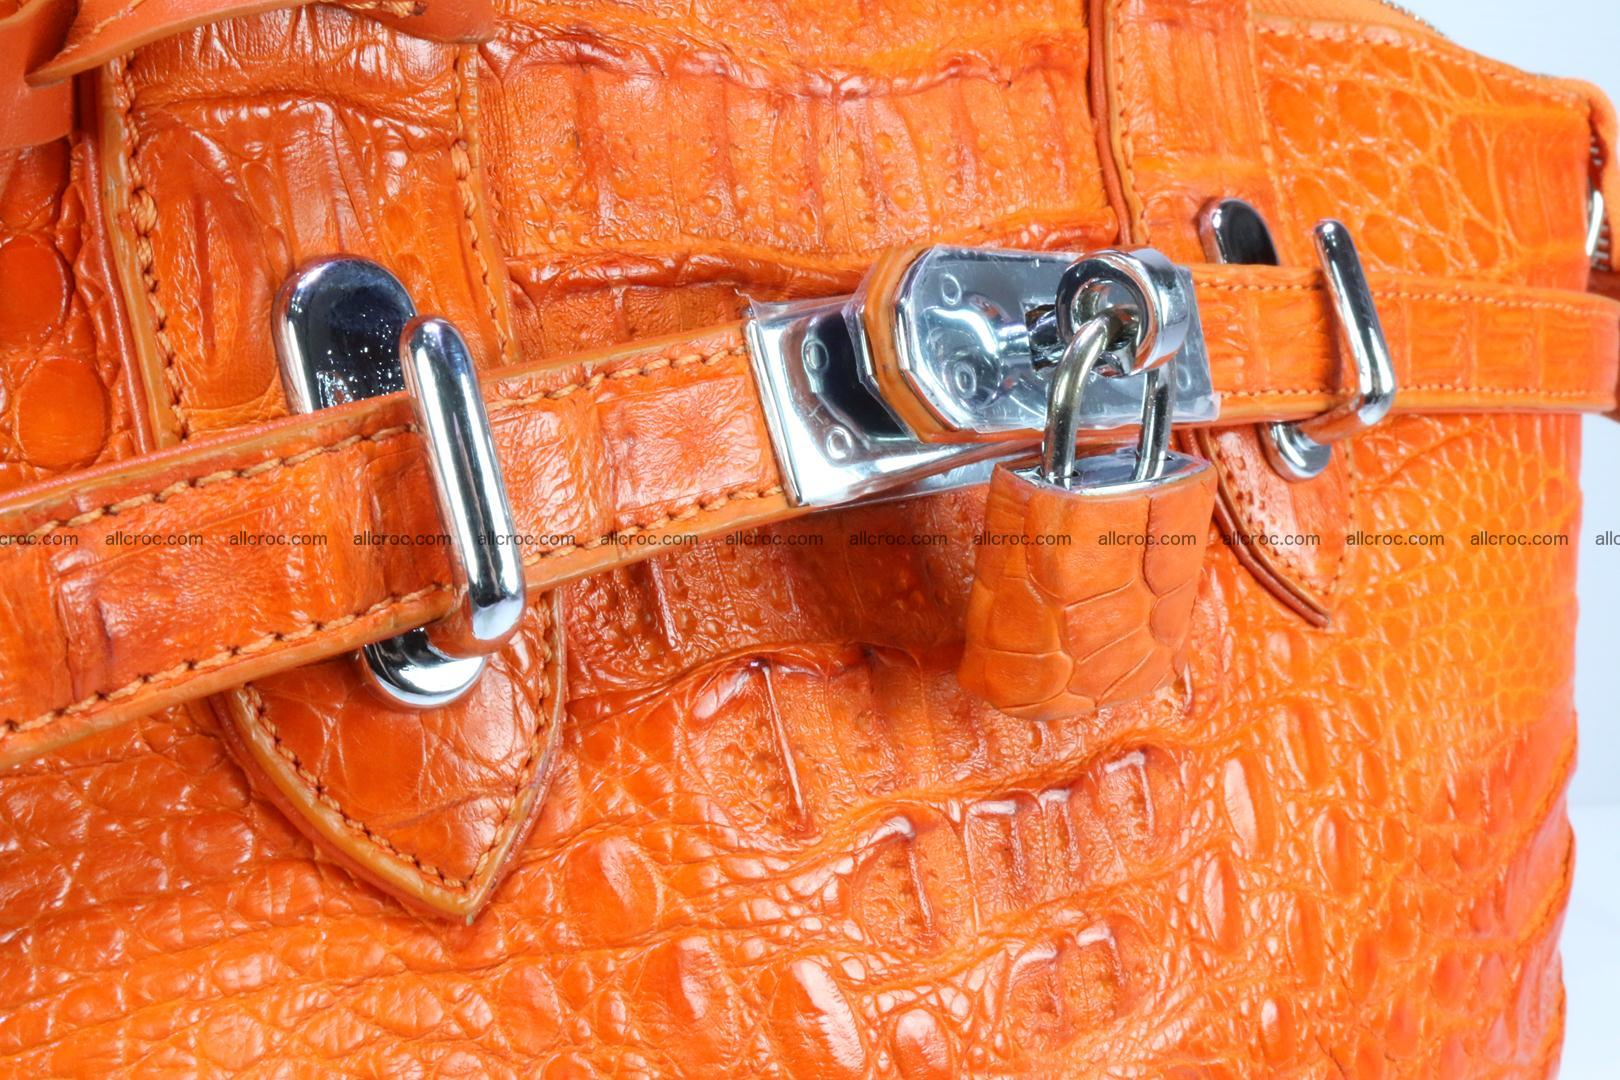 Genuine crocodile handbag for ladies 043 Foto 11